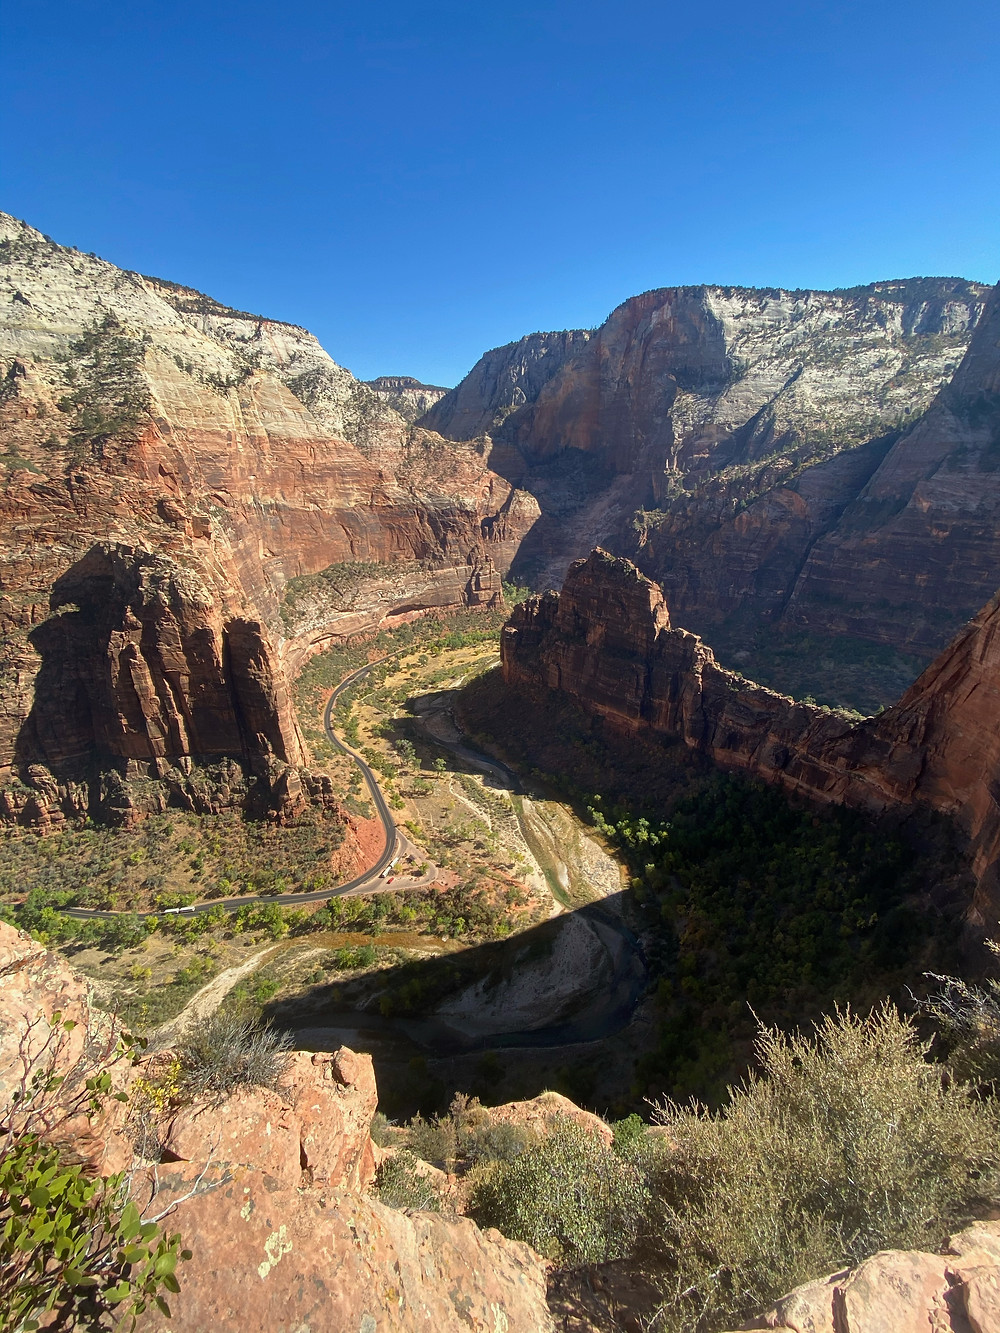 Striated red rocks stretch for miles in Zion National Park in Utah